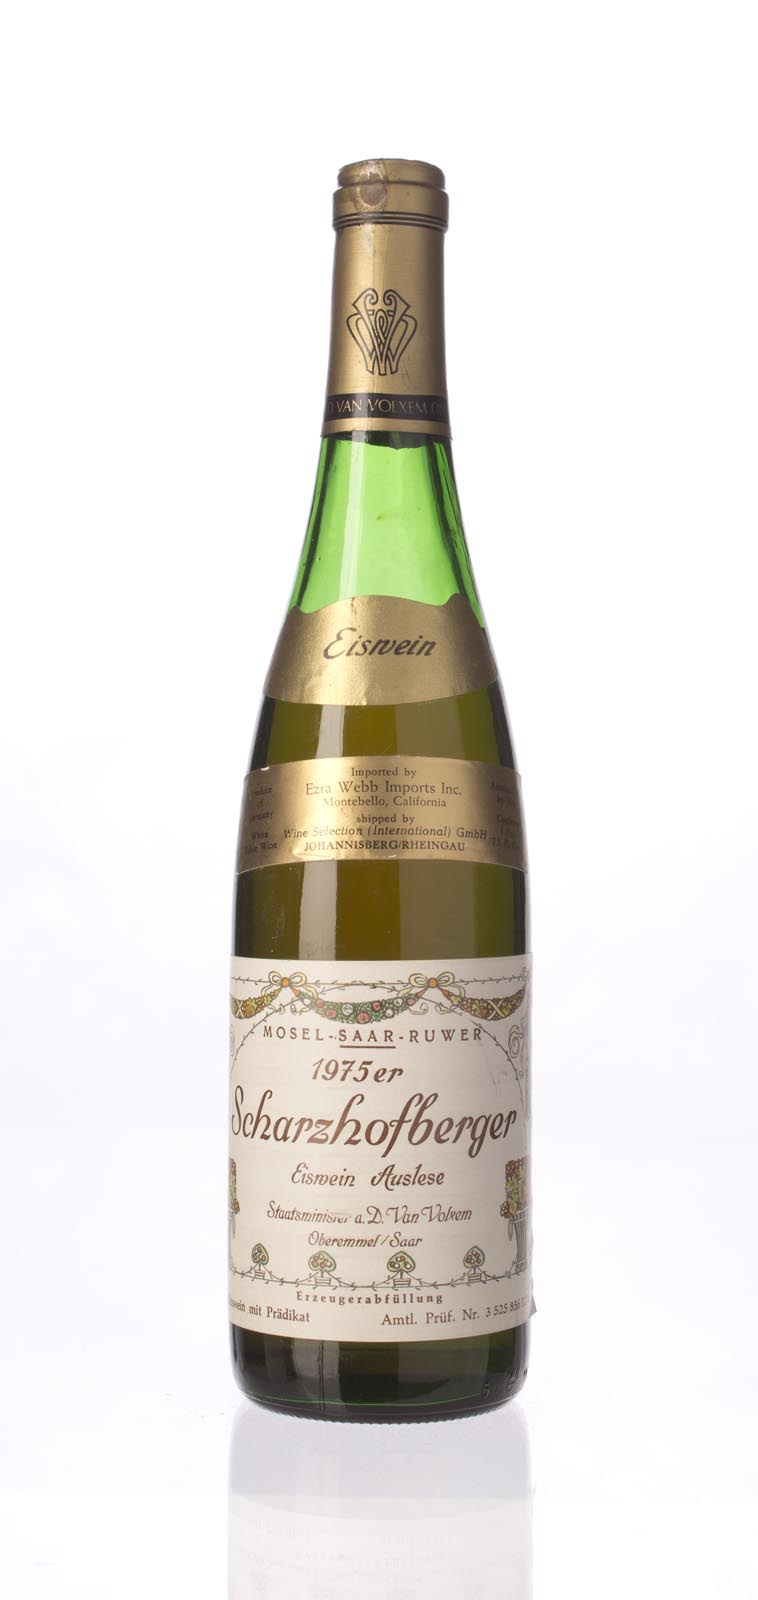 Van Volxem Scharzhofberger Riesling Eiswein Gold Capsule 1975,  () from The BPW - Merchants of rare and fine wines.